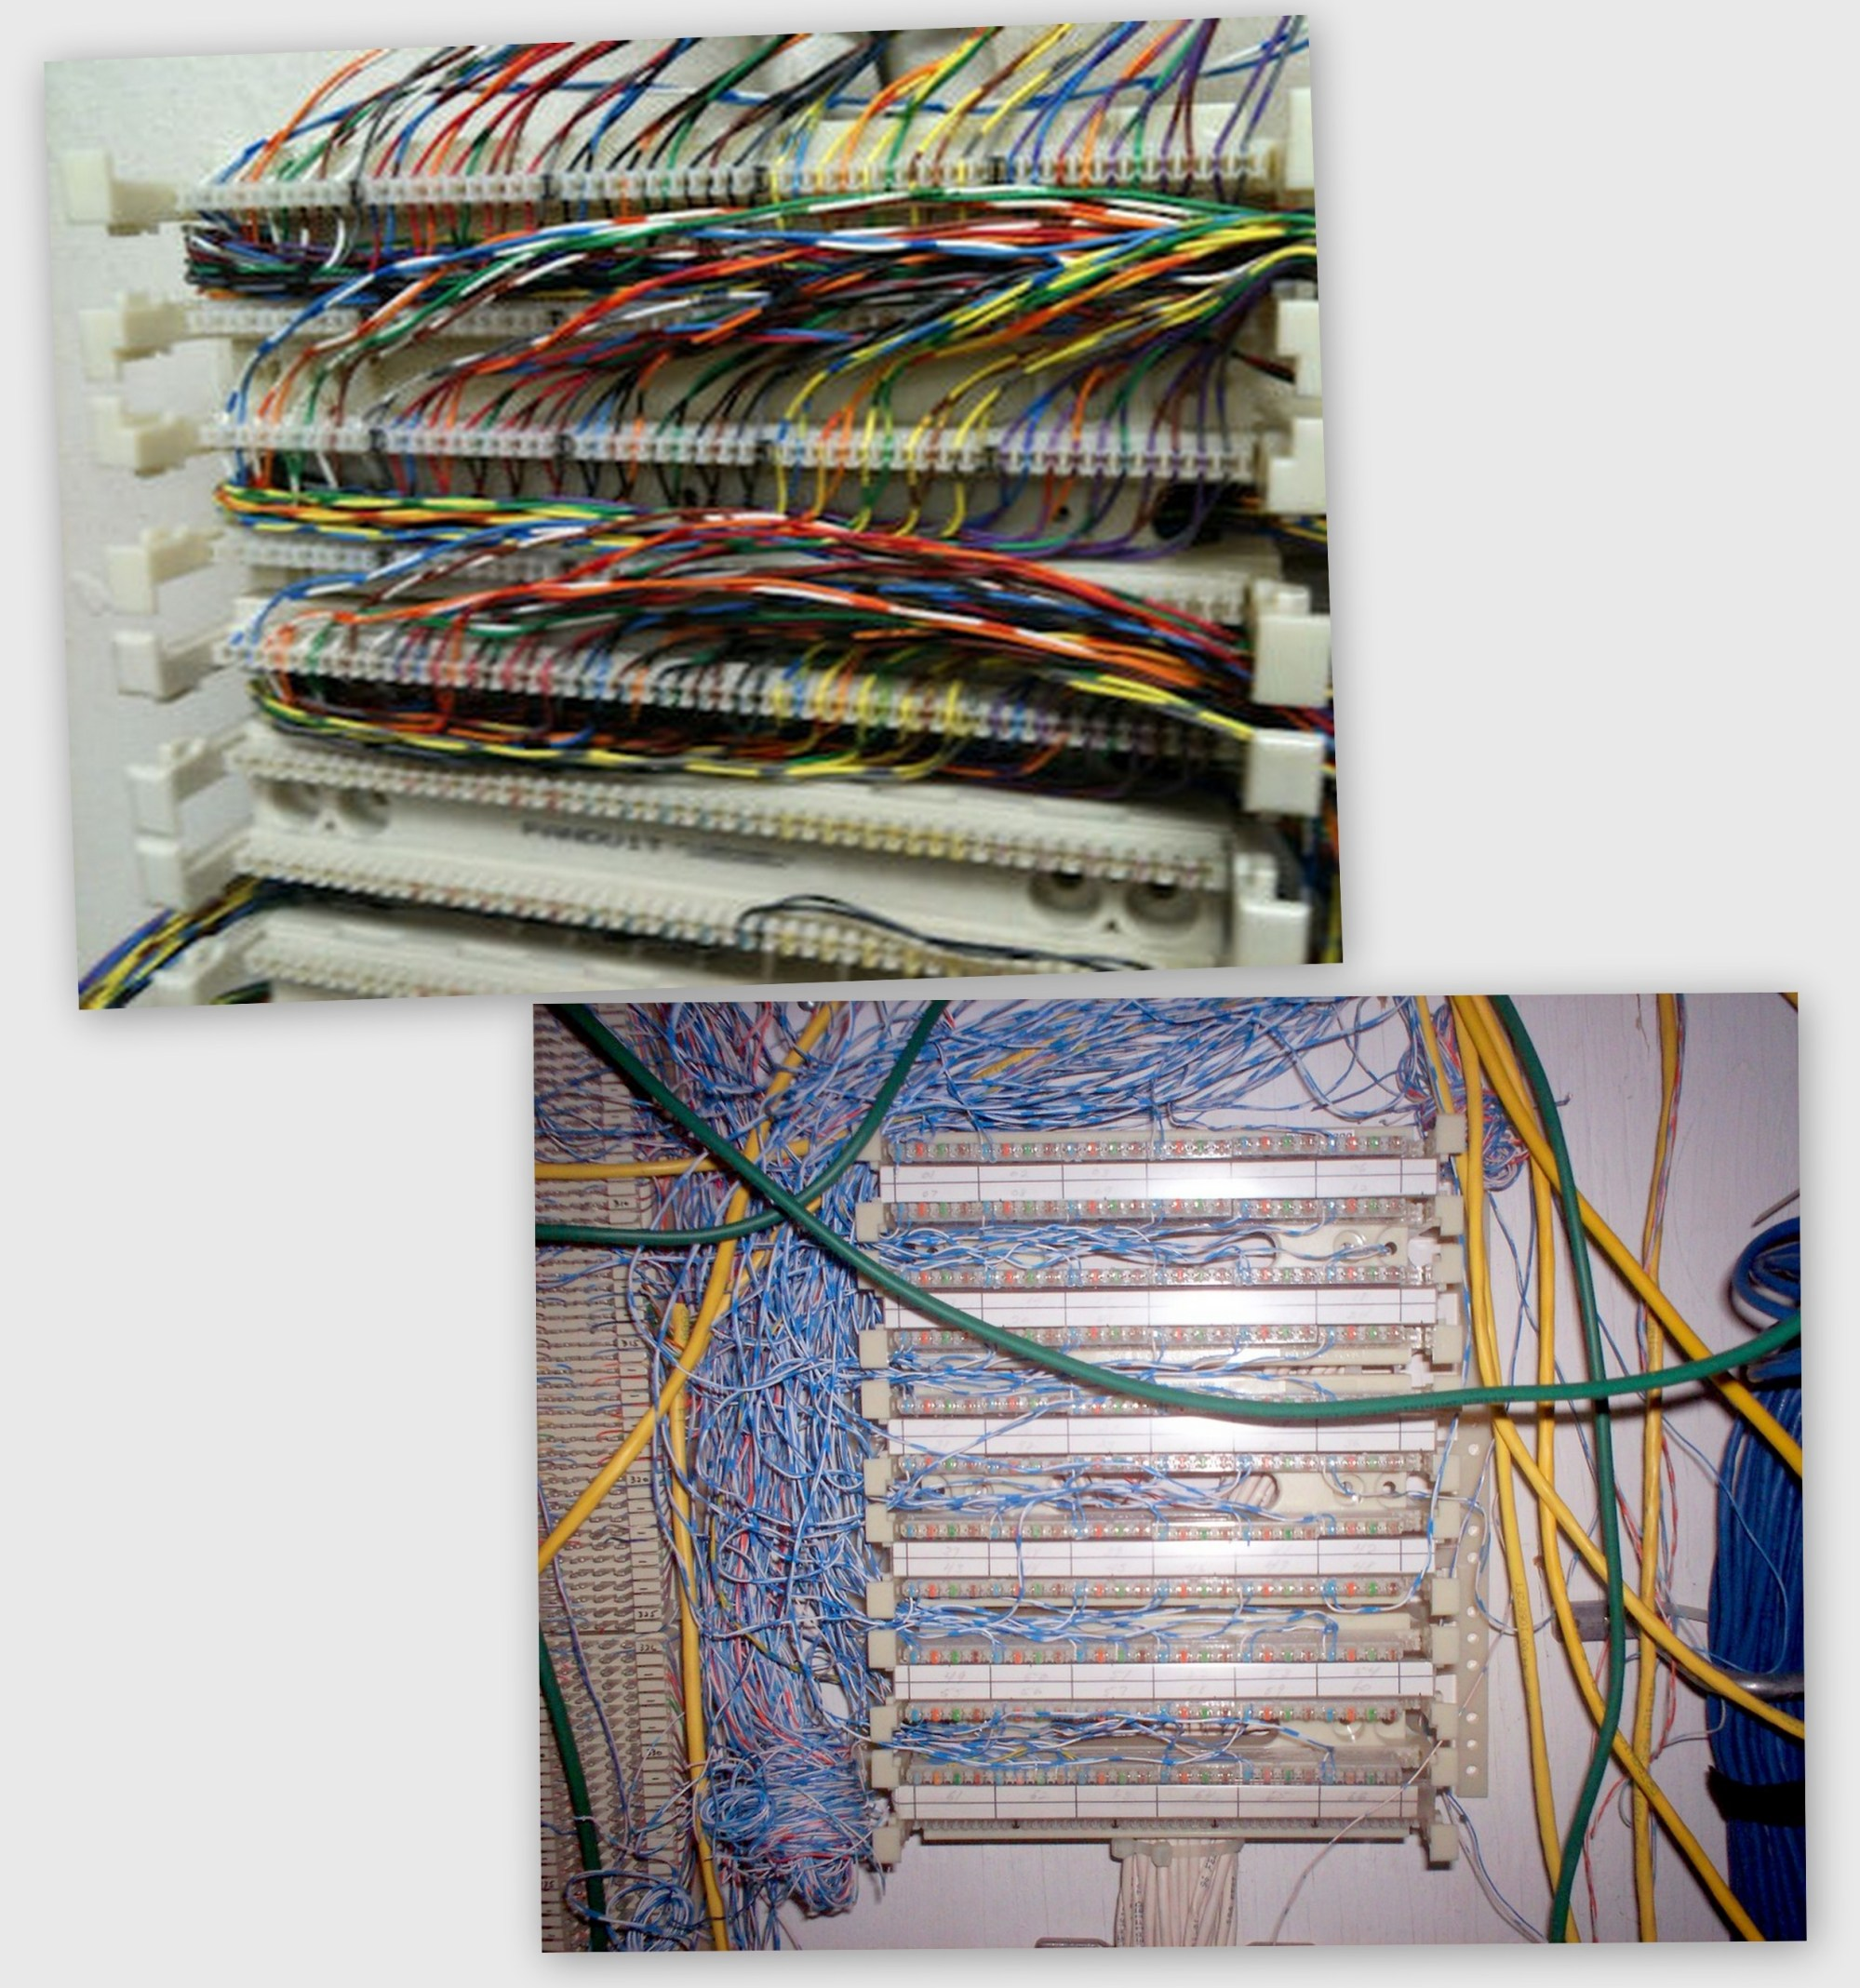 hight resolution of 66 punch down block wiring diagram 66 punch down wiring phone punch down block wiring 6 cat 6 punch down block